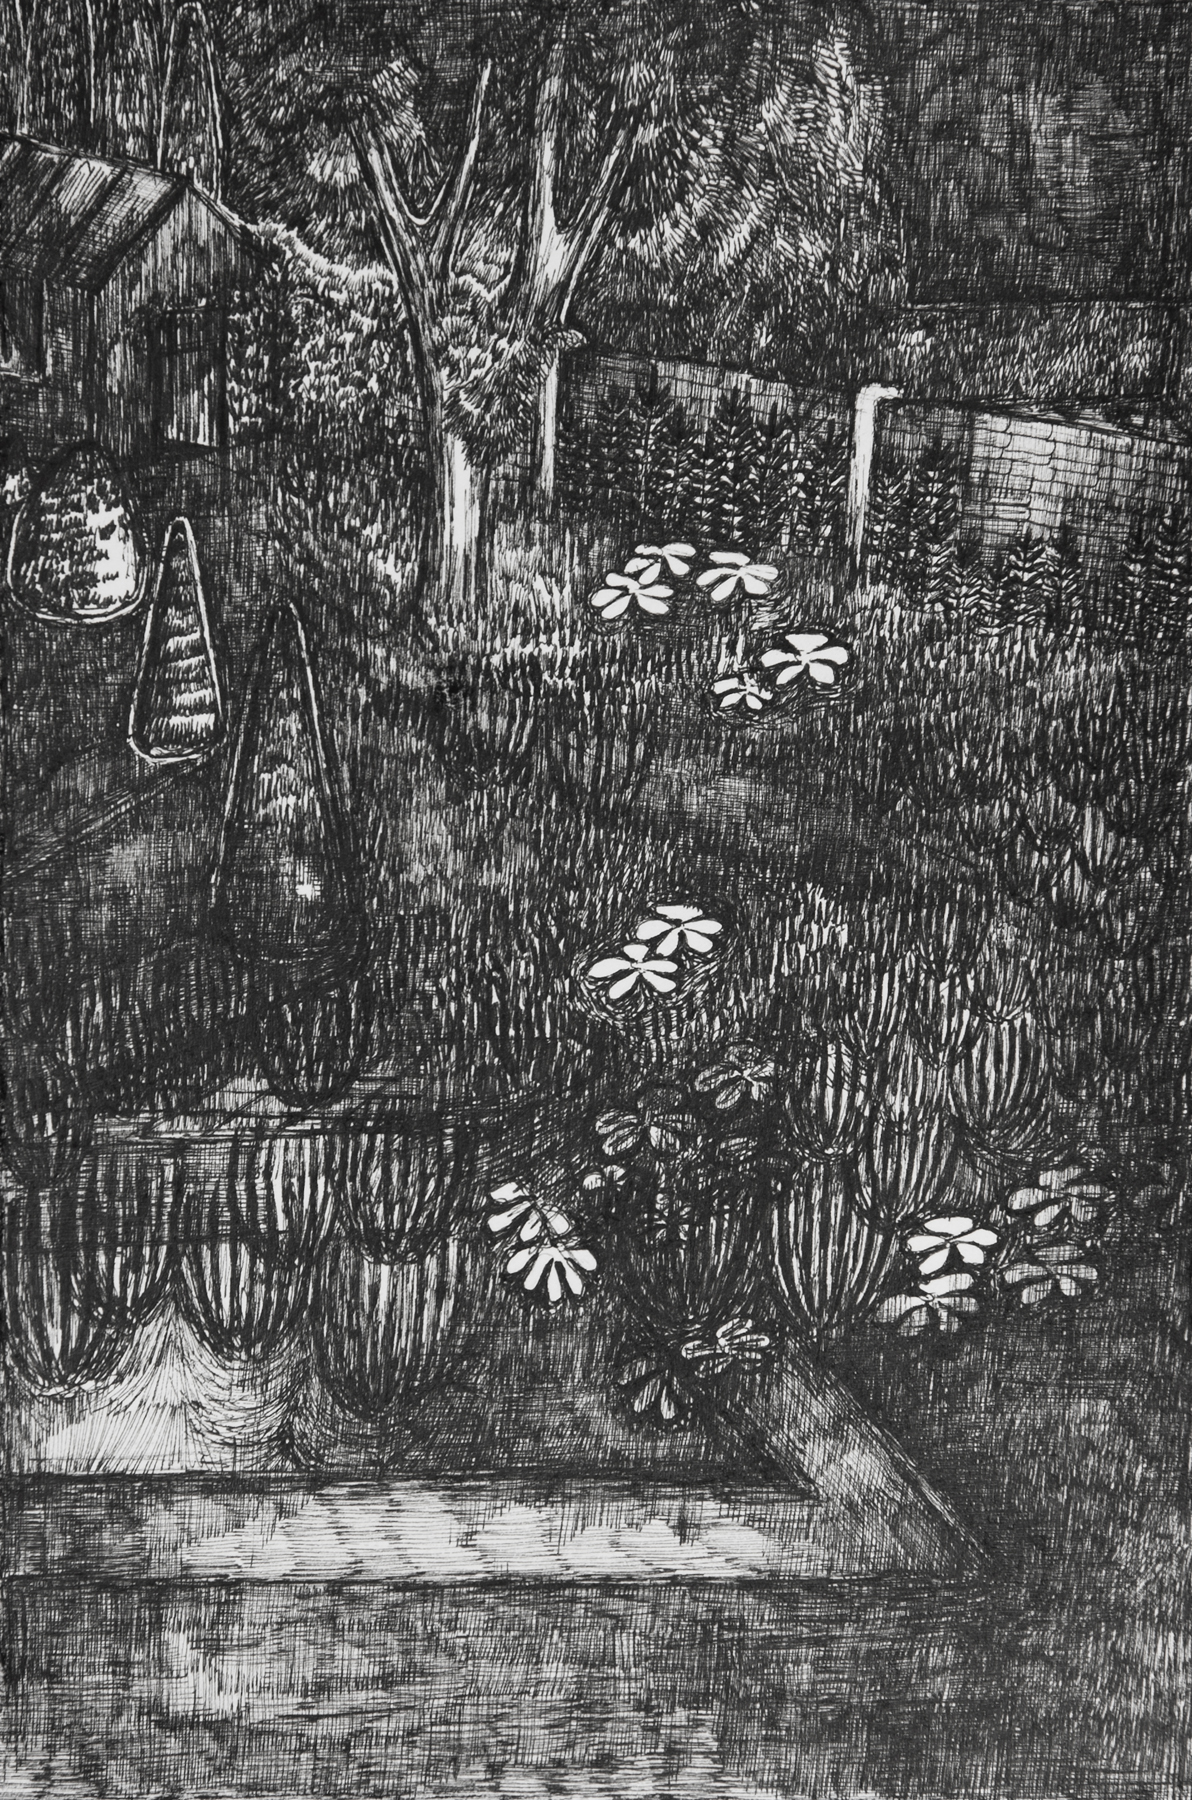 Rozemarijn Westerink - Garden, pen and ink on paper, 24 x 16 cm, 2016